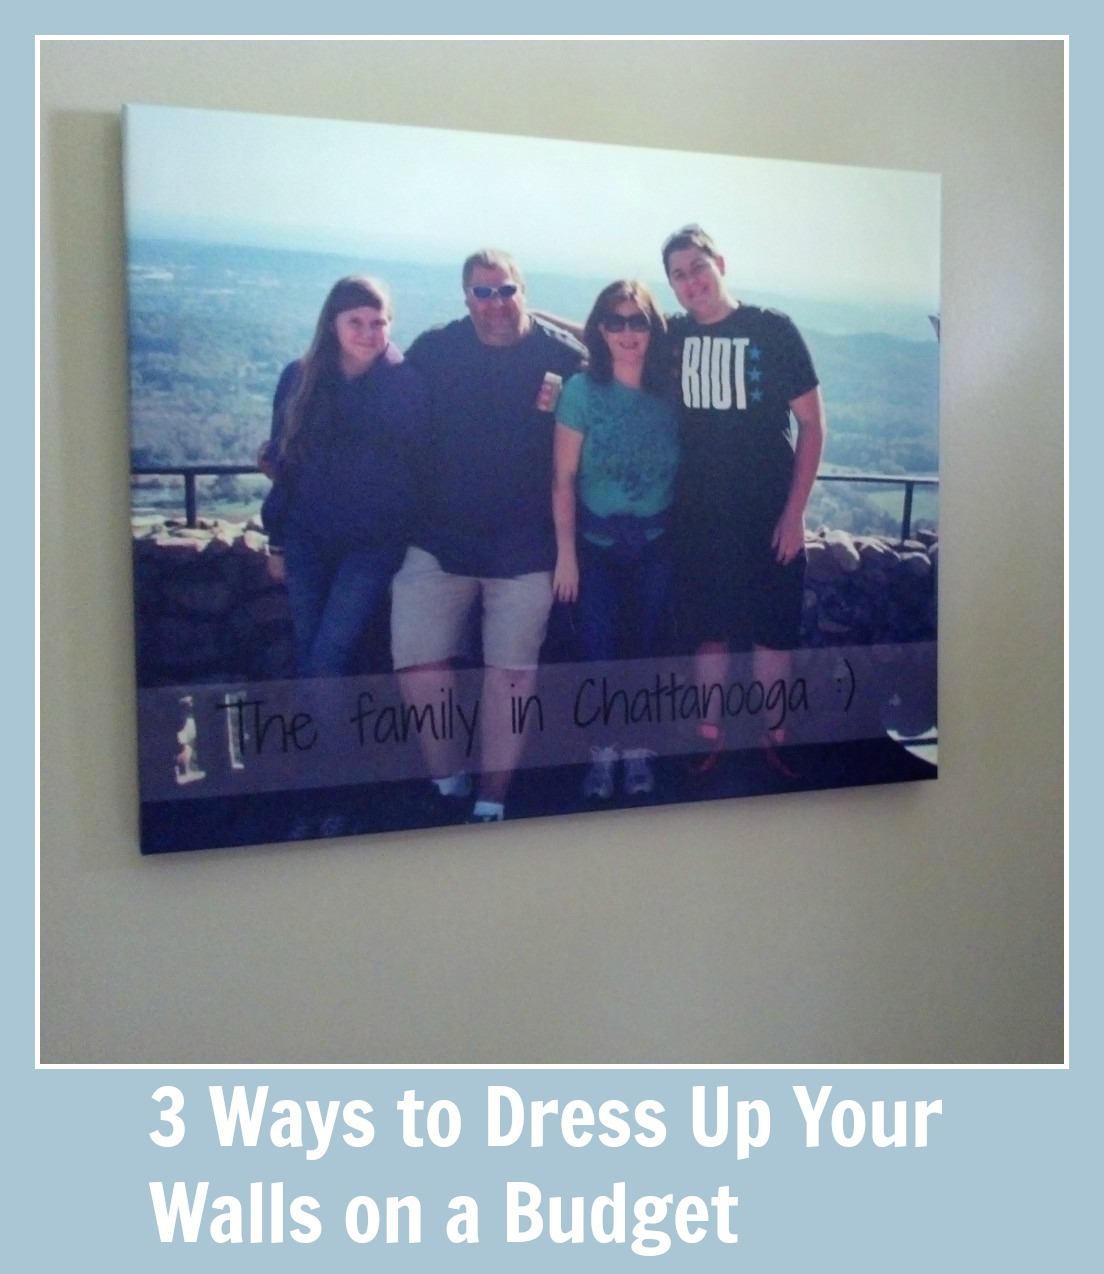 3 Ways to Dress Up Your Walls on a Budget